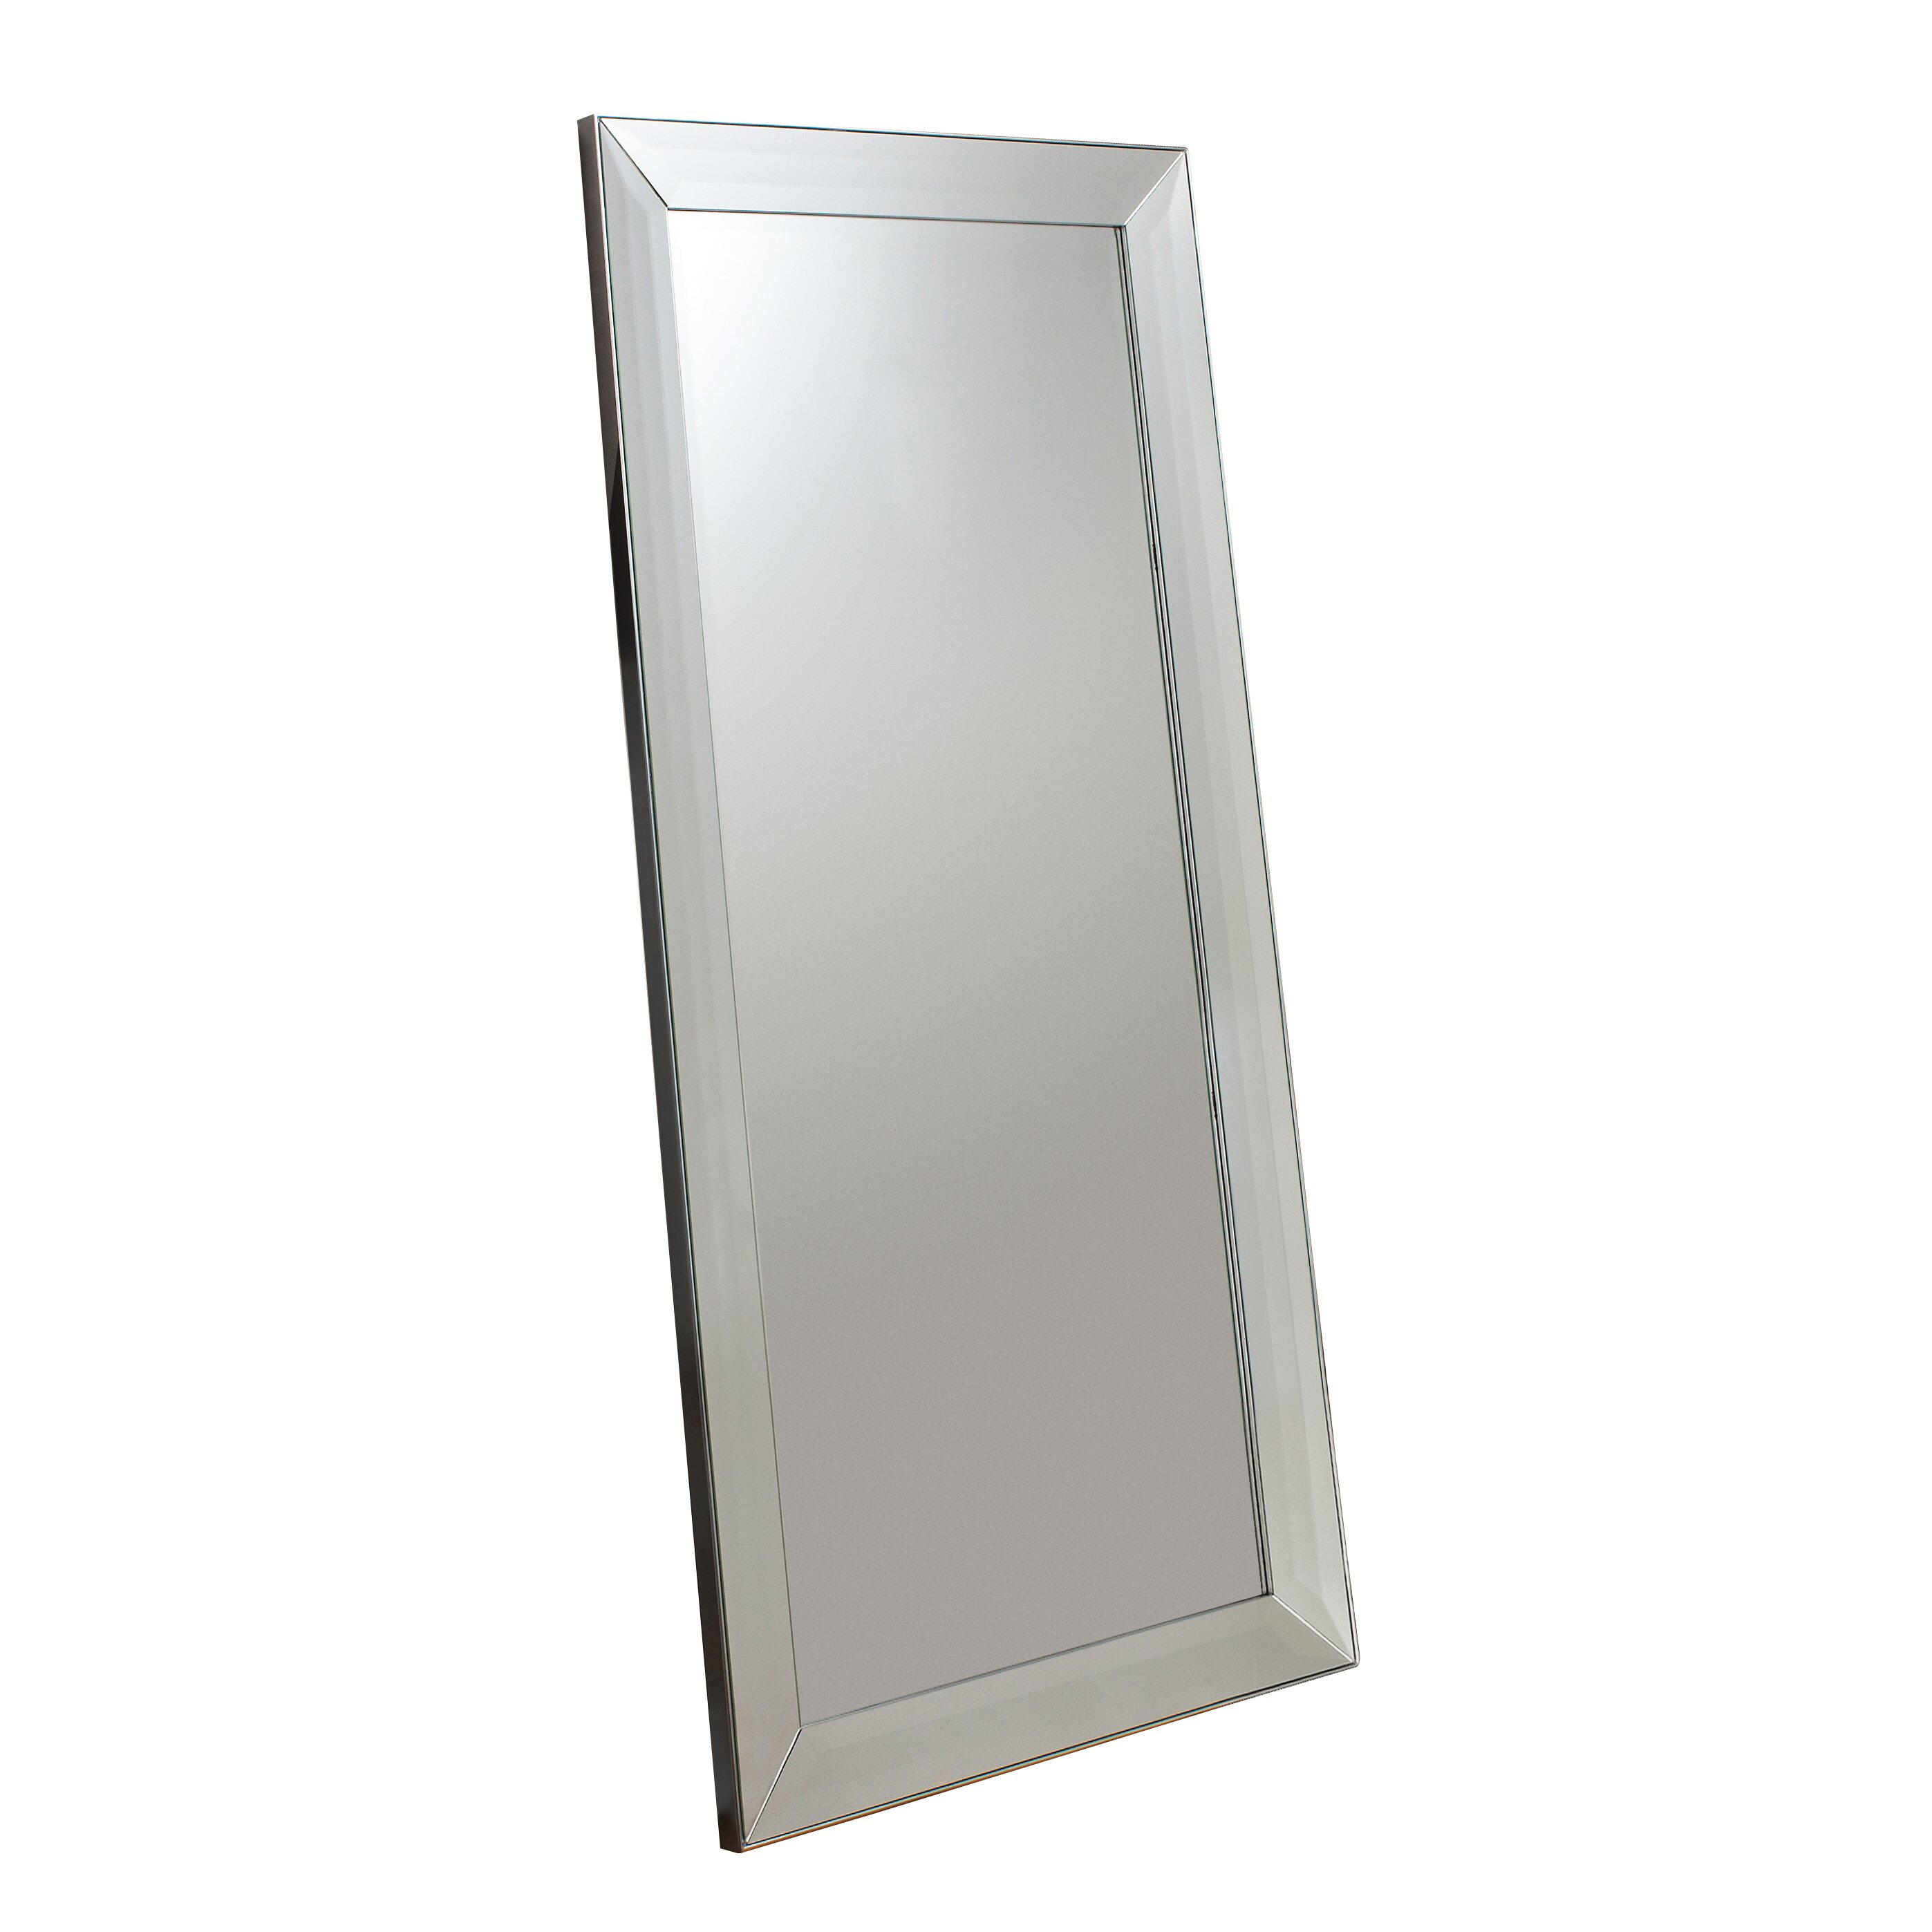 Gallery modena leaner mirror reviews wayfair uk for Leaner mirror